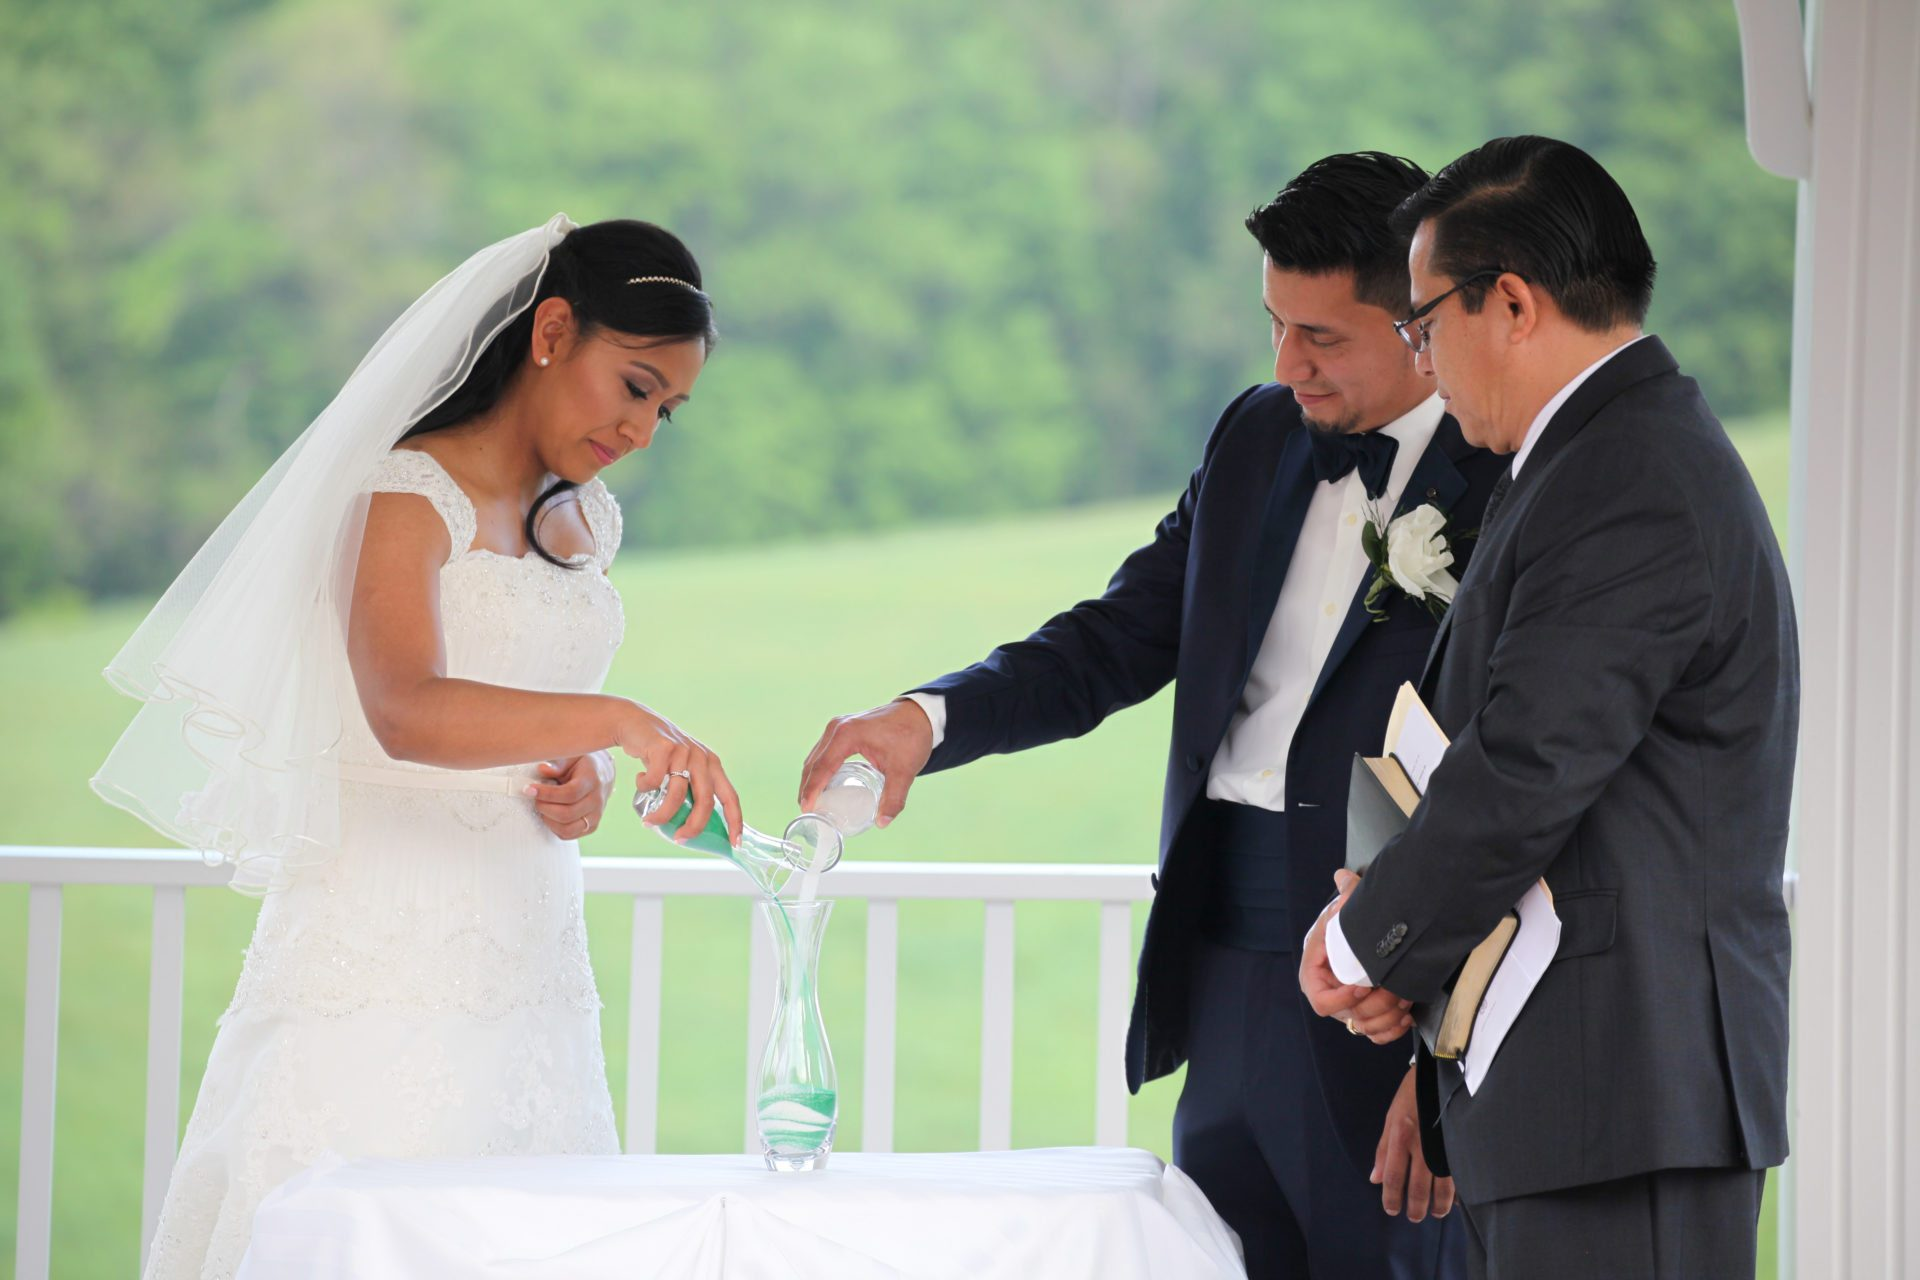 Bride and groom pour unity sand during outdoor wedding ceremony at Morningside Inn wedding venue Frederick MD